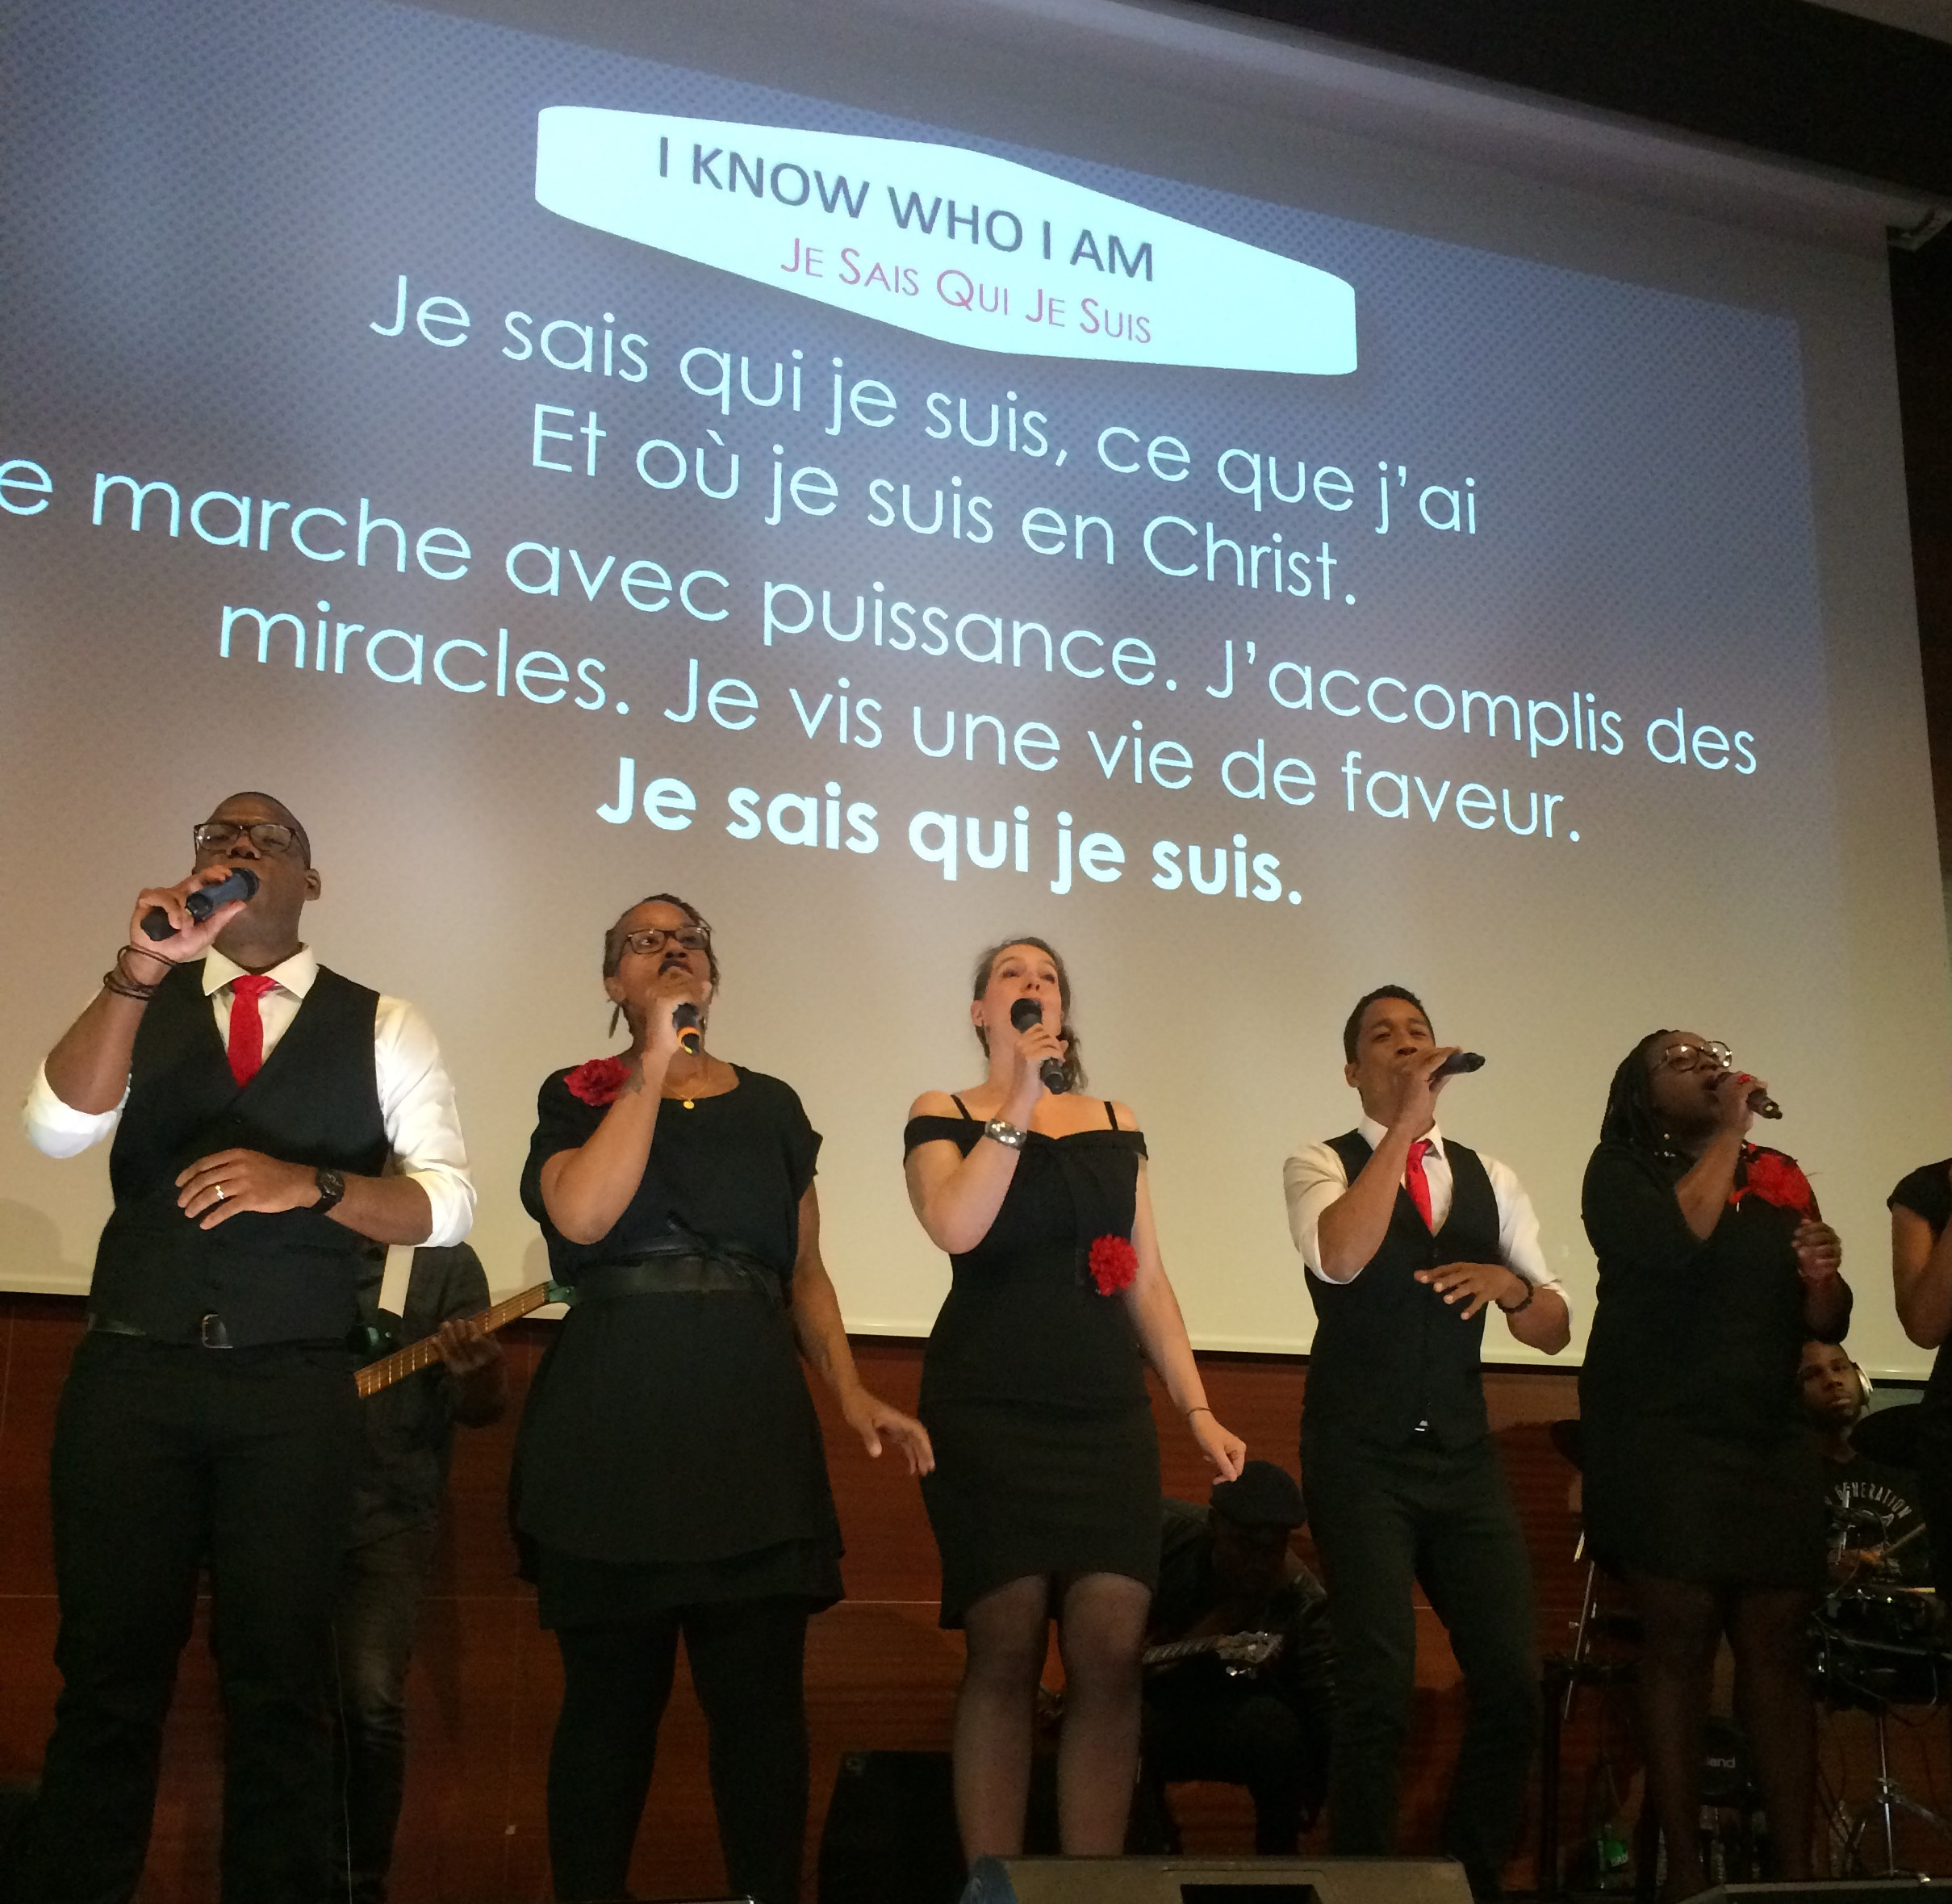 concert gospel Musical Gifts action femmes grand sud TBS